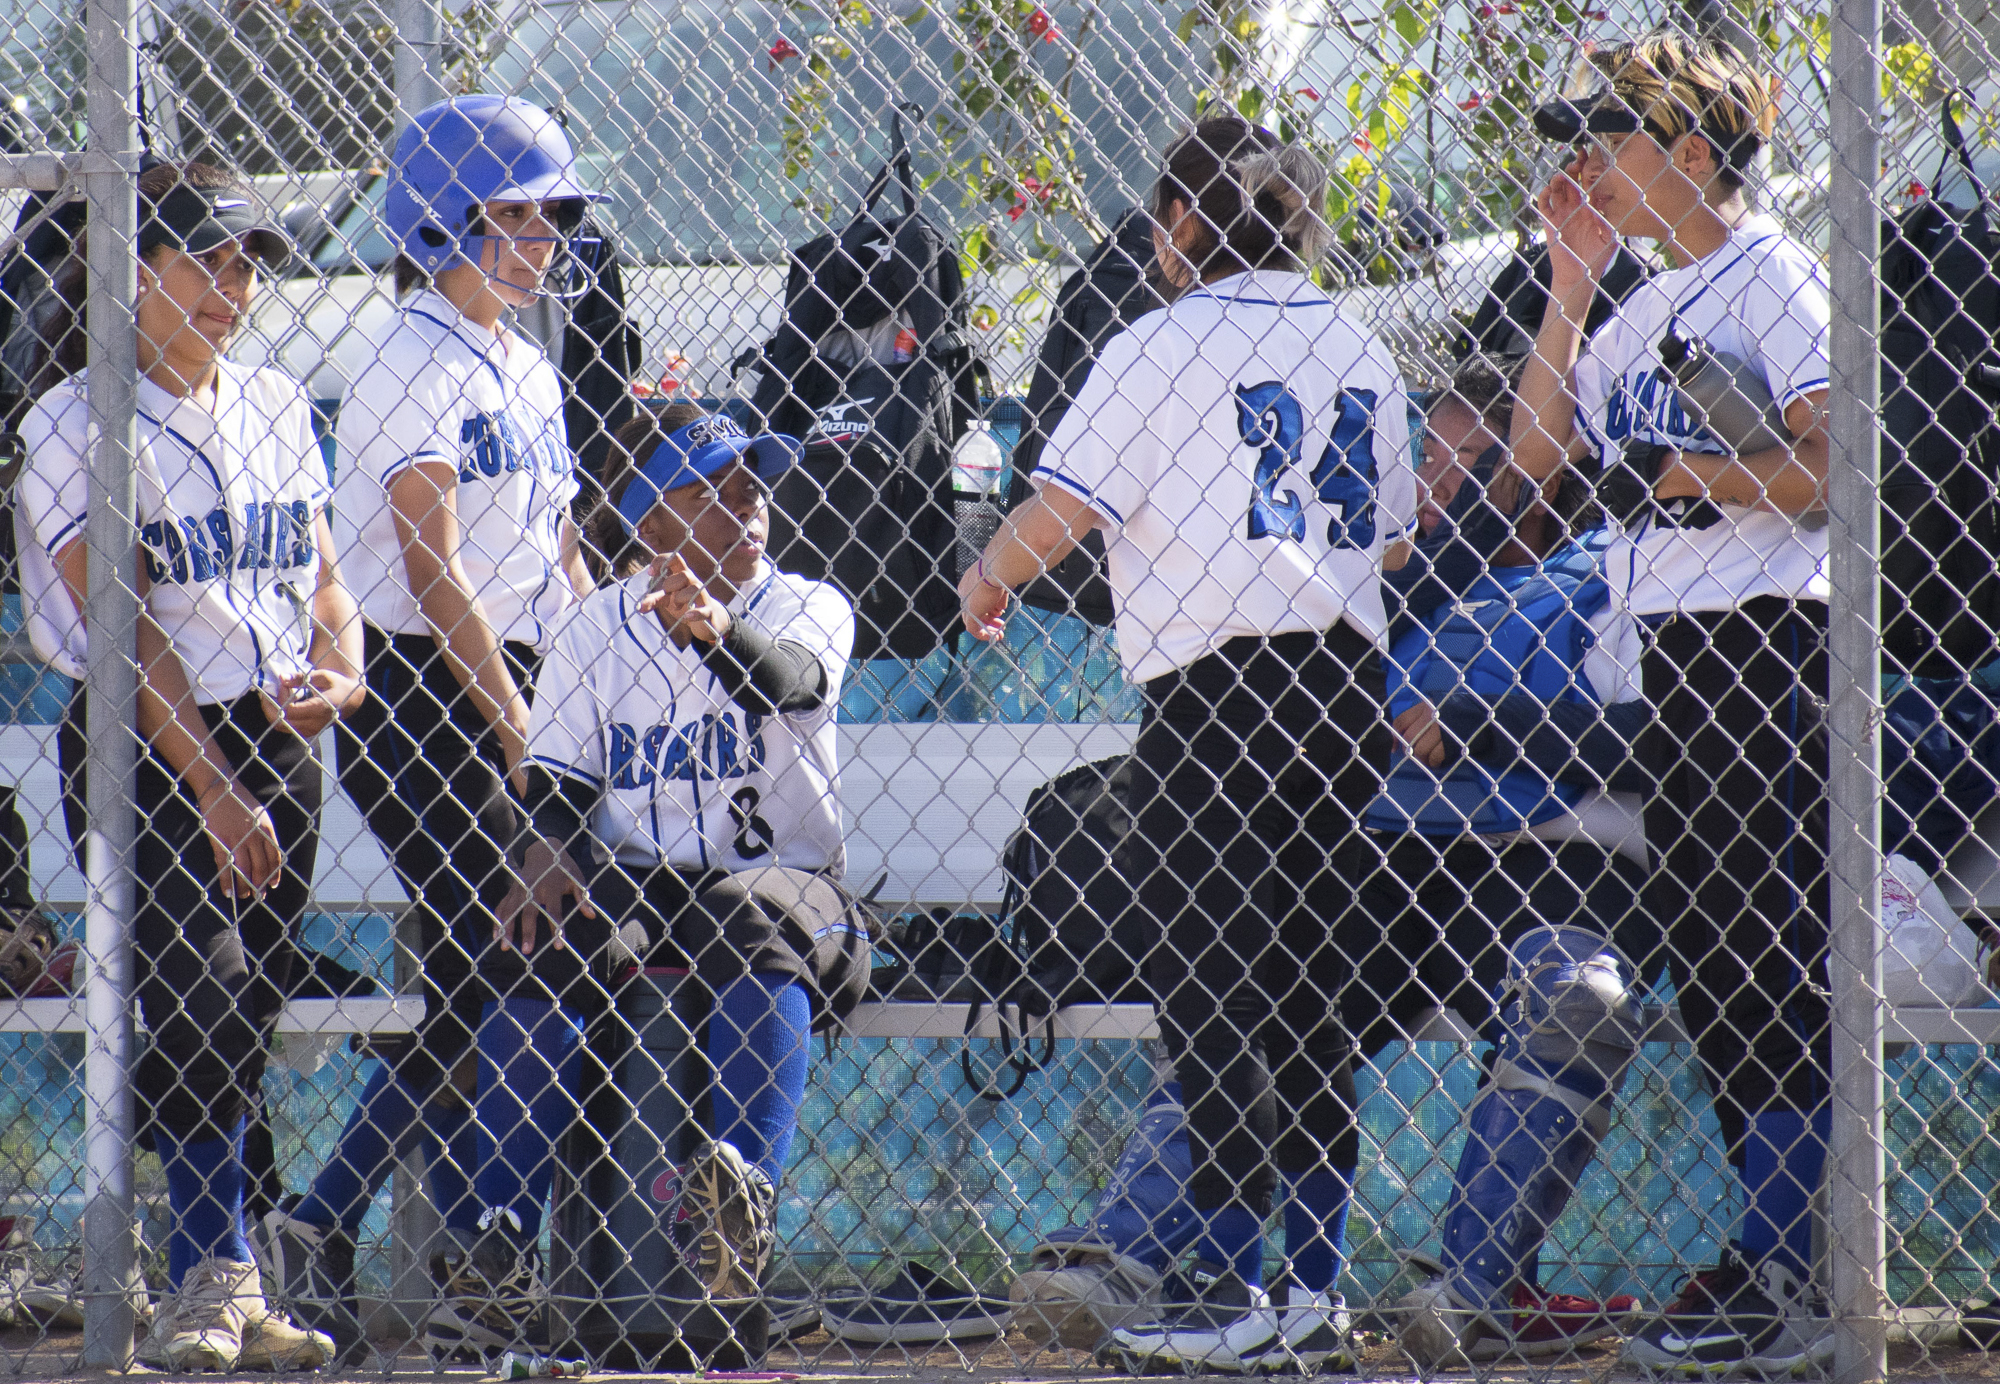 The Santa Monica Corsairs stop at the dugout during the sixth inning at a softball game on Tuesday, April 10 at the John Adams Middle School Field in Santa Monica, California. The game ended with an 11-8 loss for the Corsairs, further continuing their six-game loss. (Ethan Lauren/Corsair Photo)